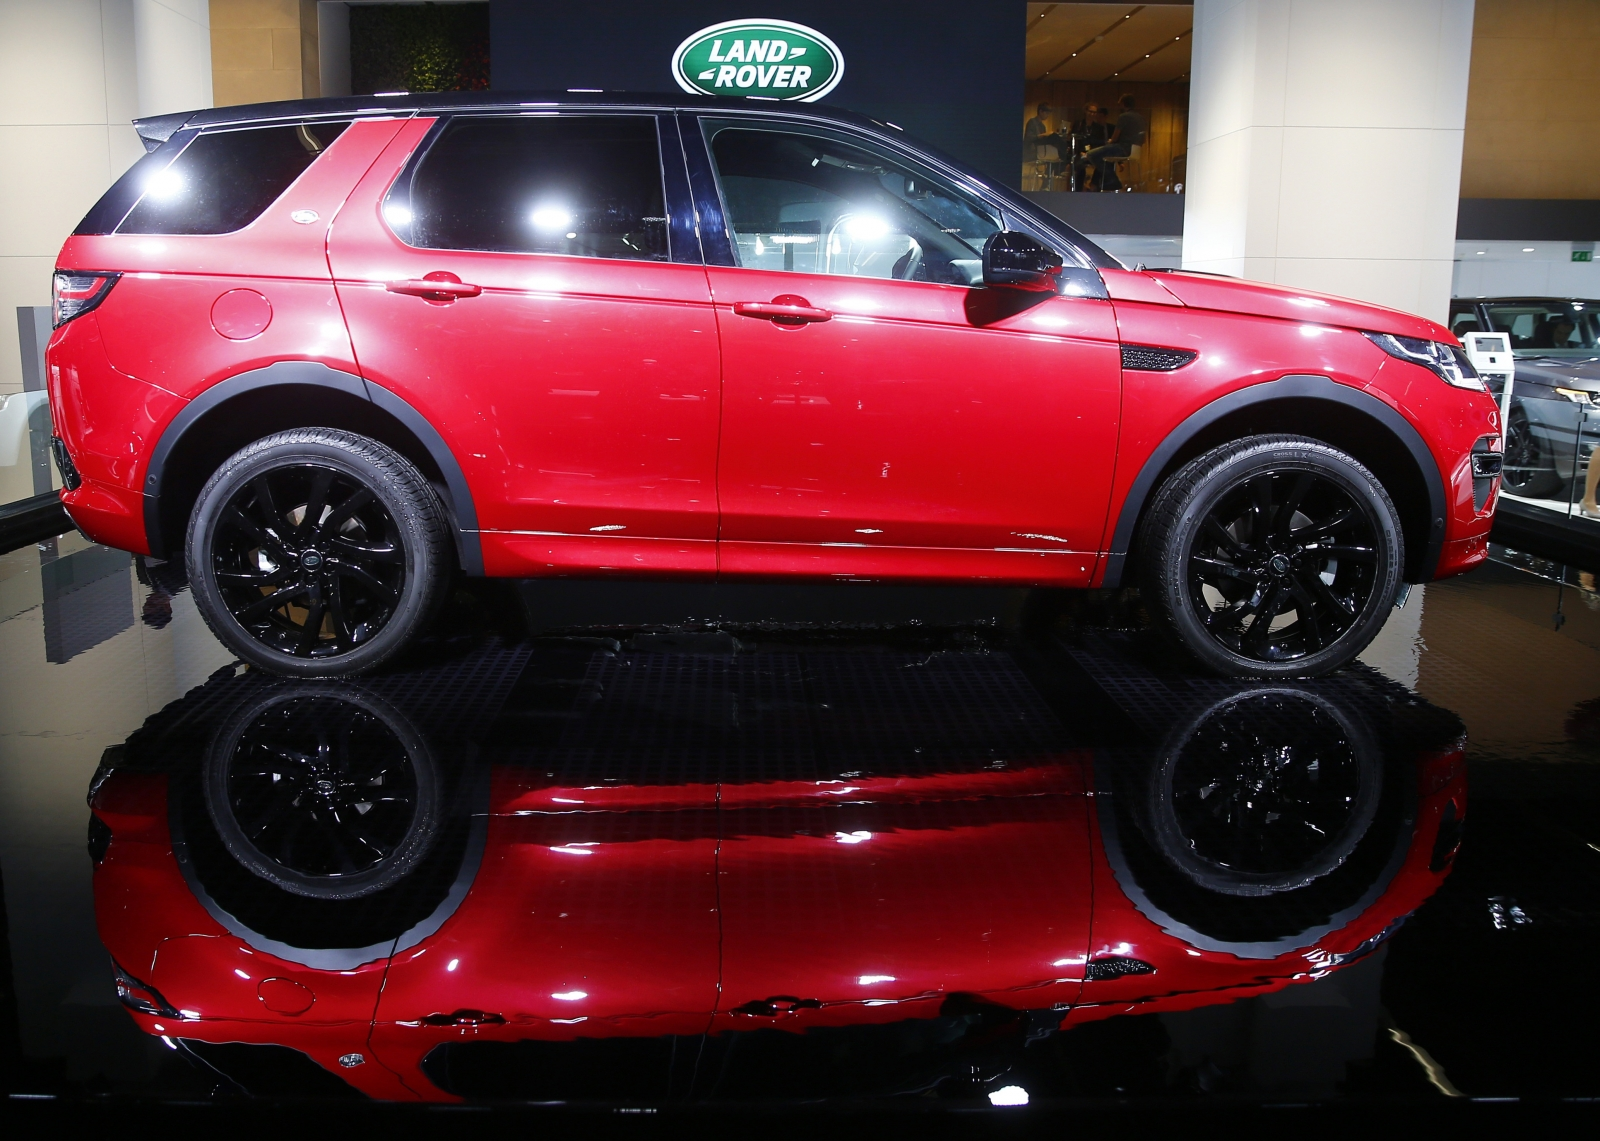 Jaguar Land Rover opens new £240m plant in the Rio de Janeiro state of Brazil